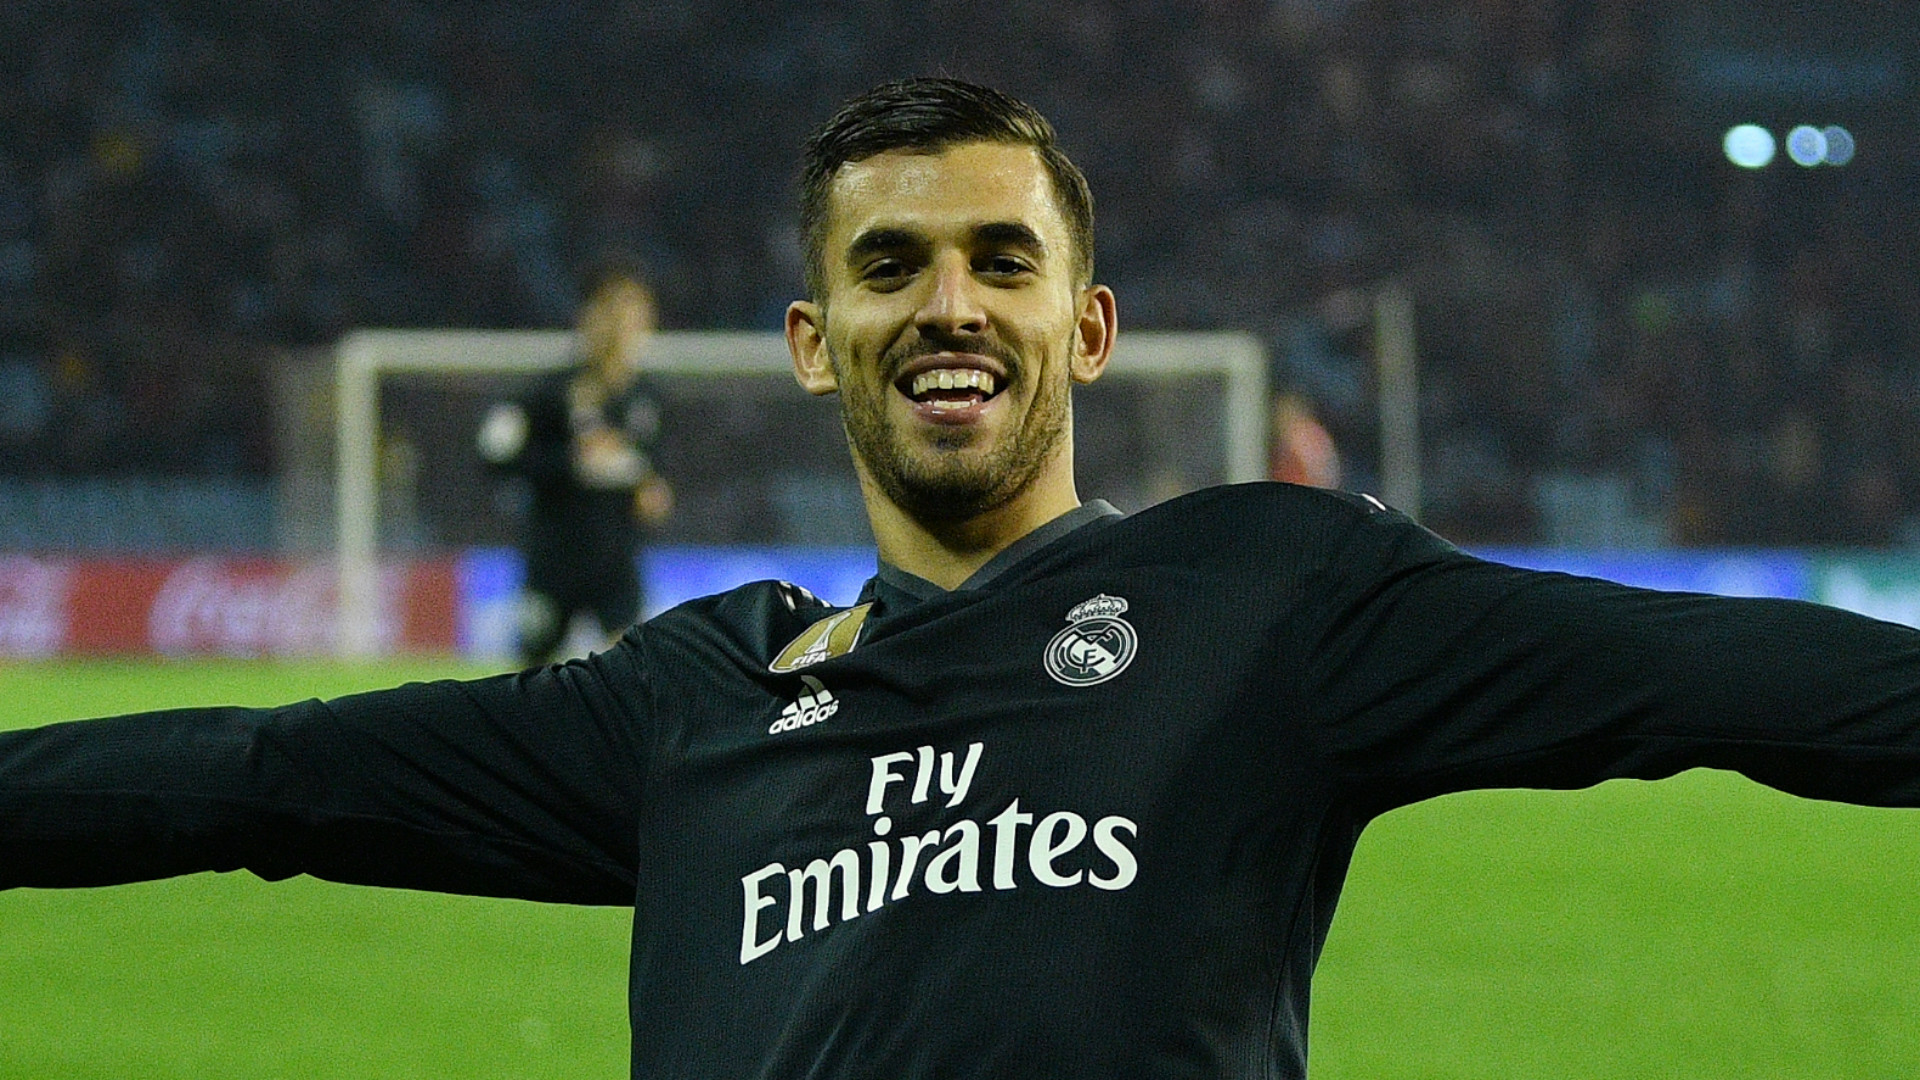 'Ceballos is a very good player' - Emery praises midfielder ahead of potential loan move